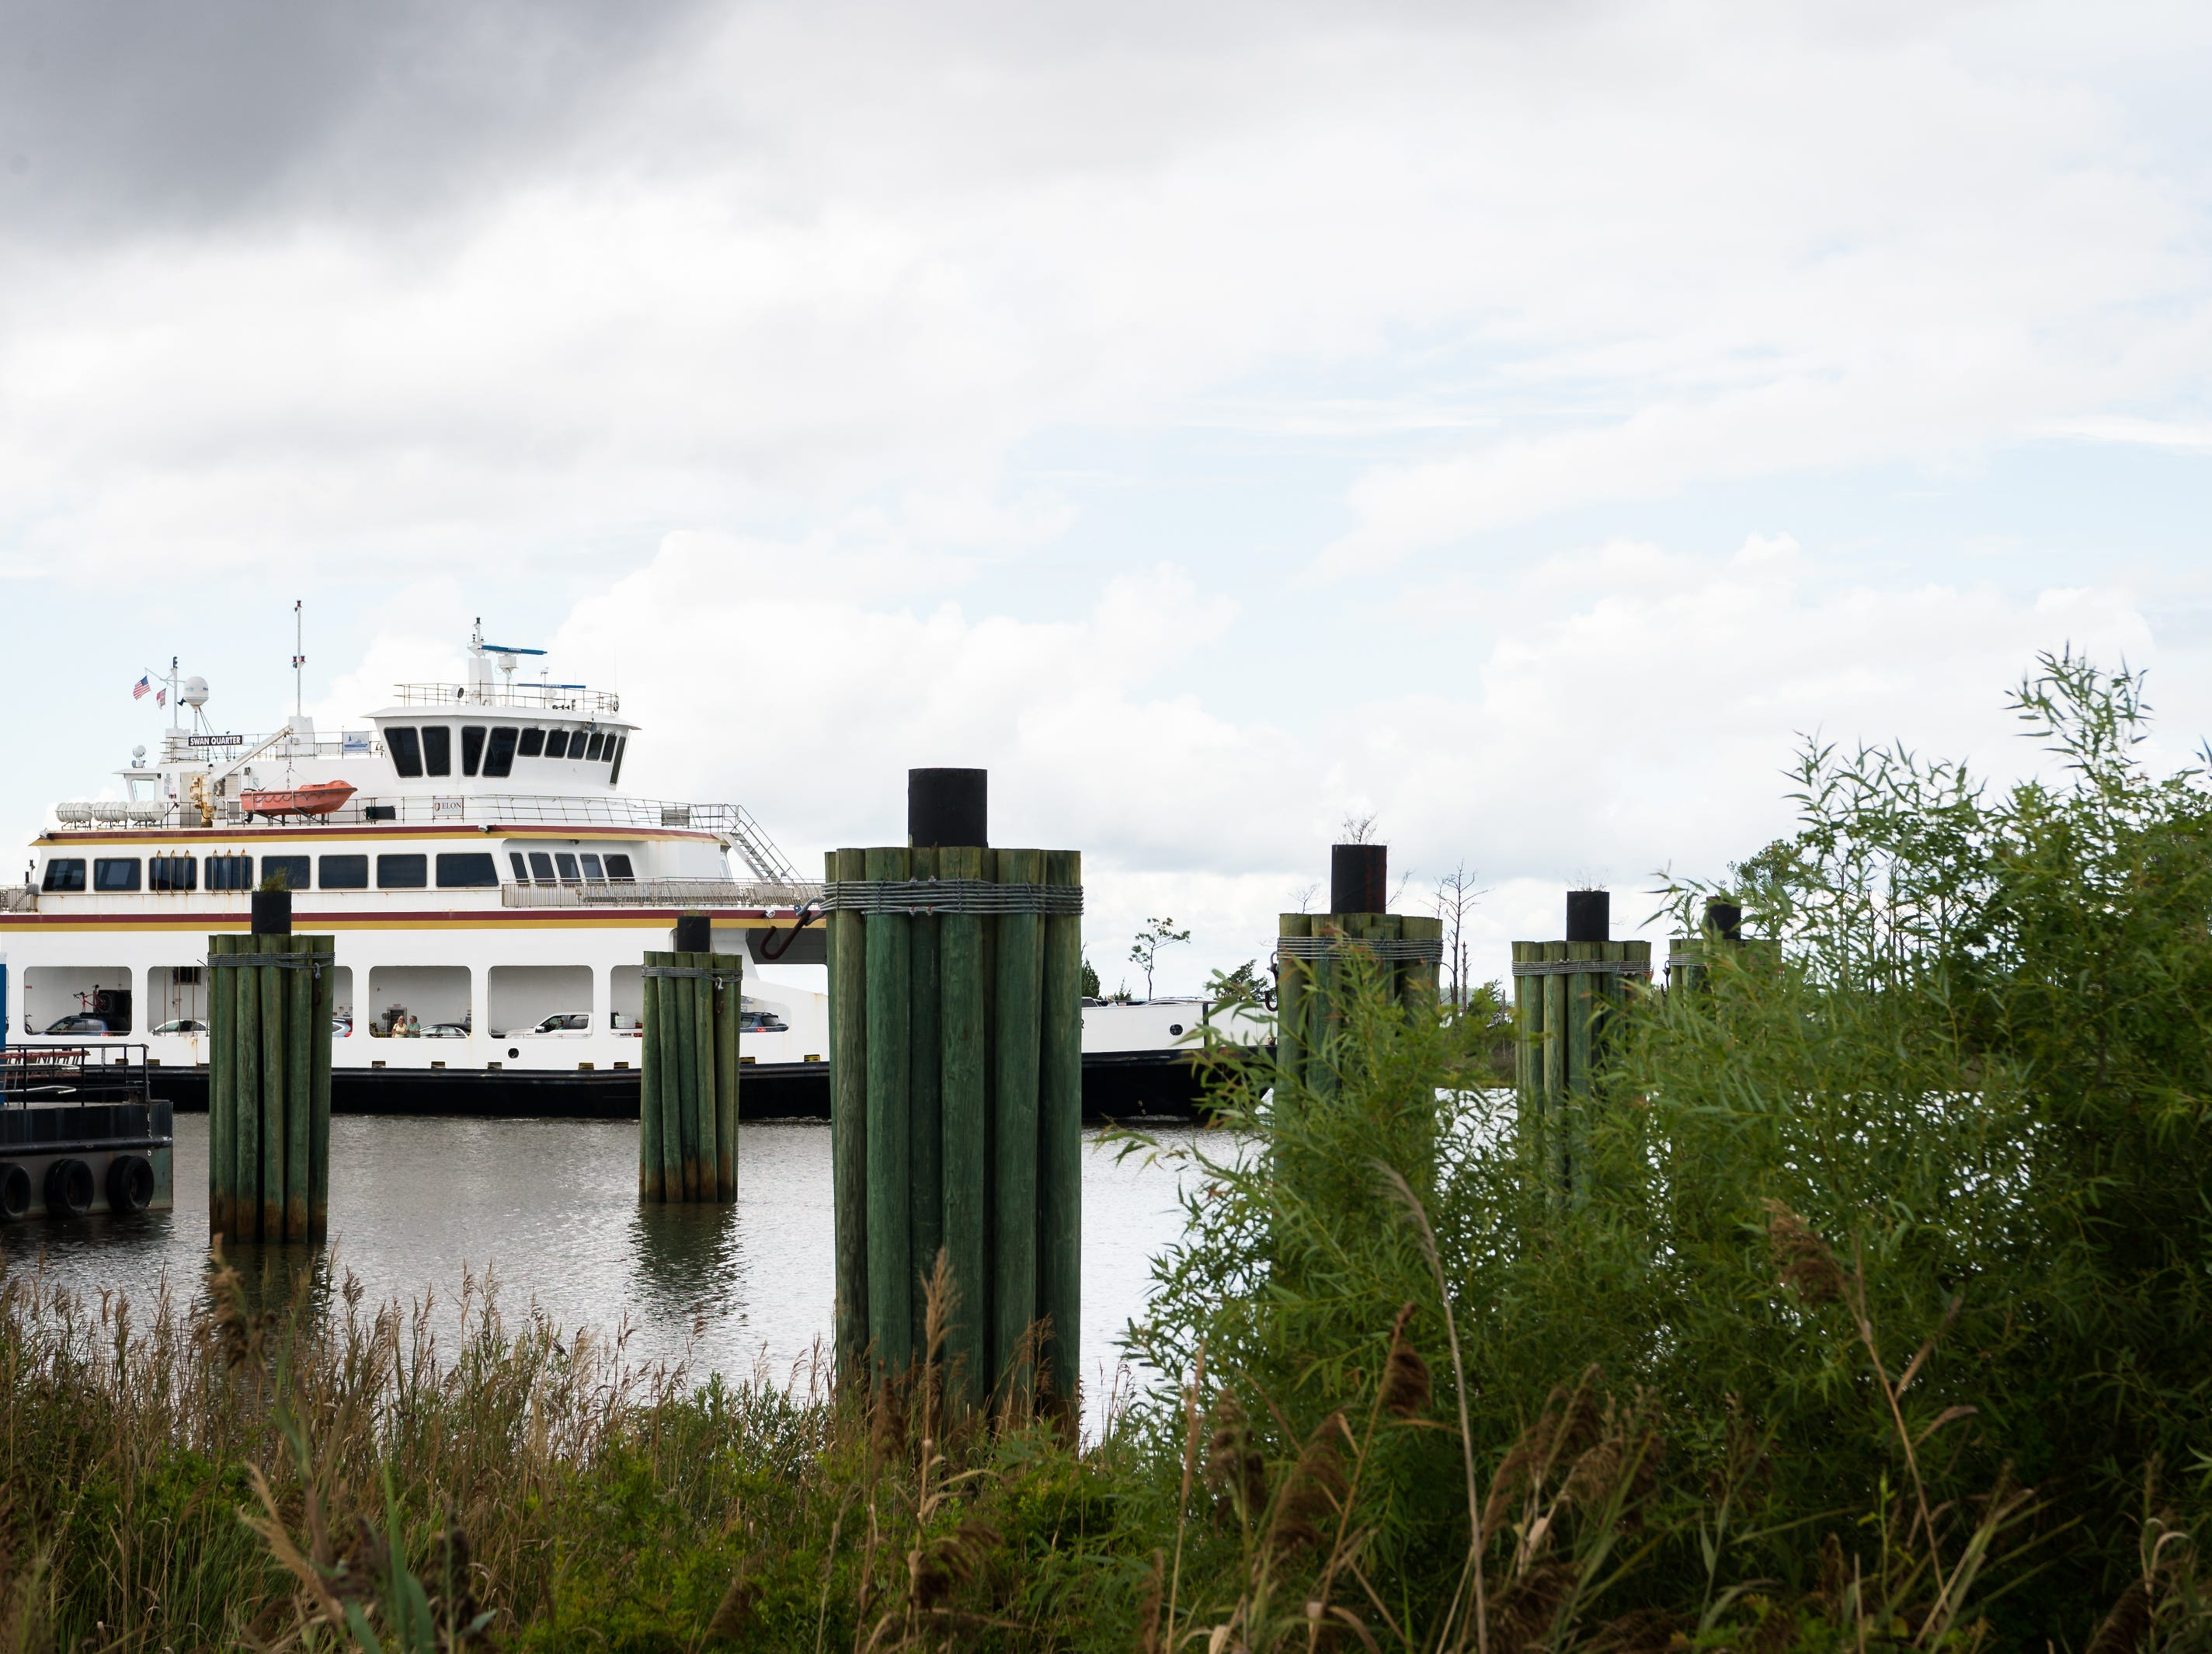 The Swan Quarter ferry arrives at the terminal carrying a full load of passengers from Ocracoke Island Sept. 11, 2018 after the mandatory evacuation order in preparation for hurricane Florence.